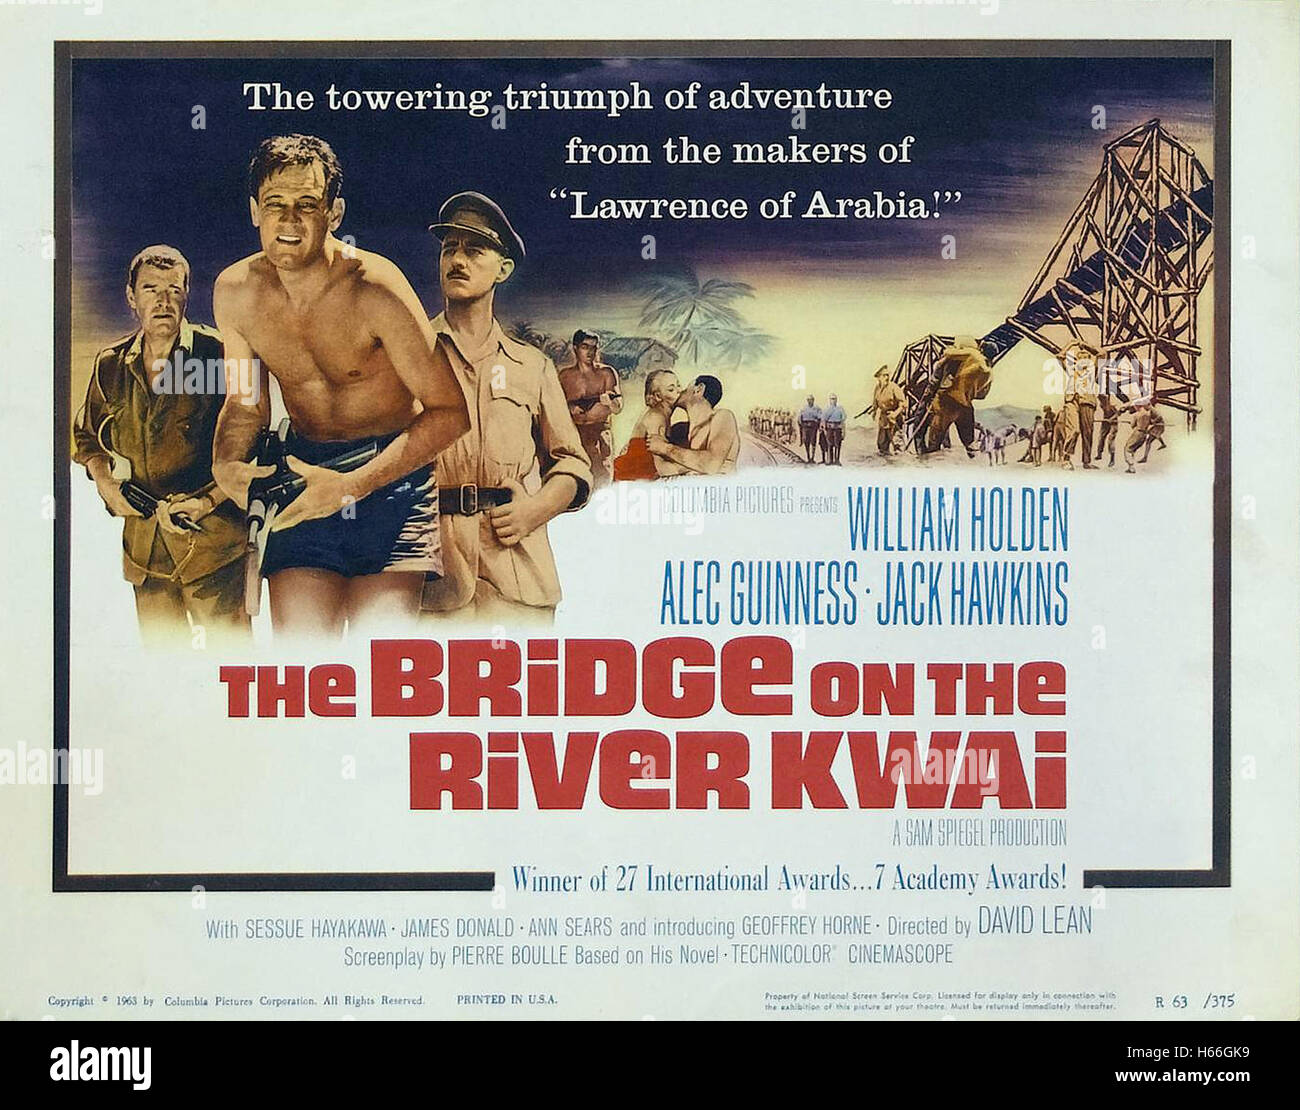 https://i0.wp.com/c8.alamy.com/comp/H66GK9/the-bridge-on-the-river-kwai-movie-poster-H66GK9.jpg